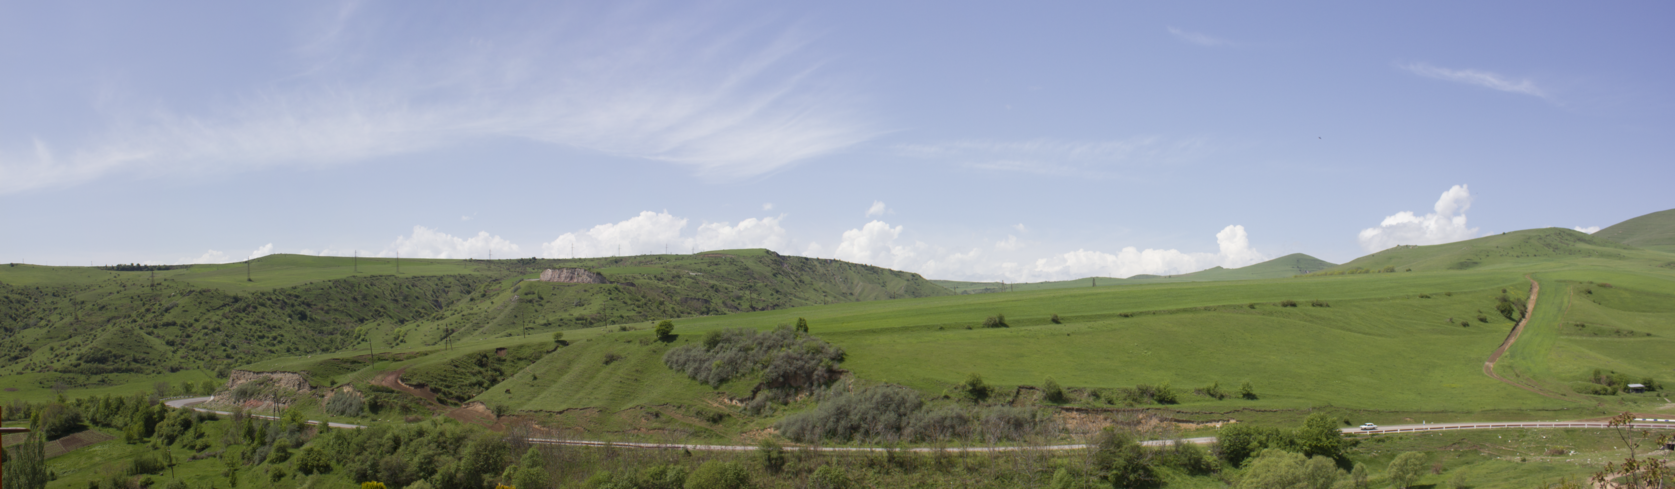 Panorama from syunik province.png